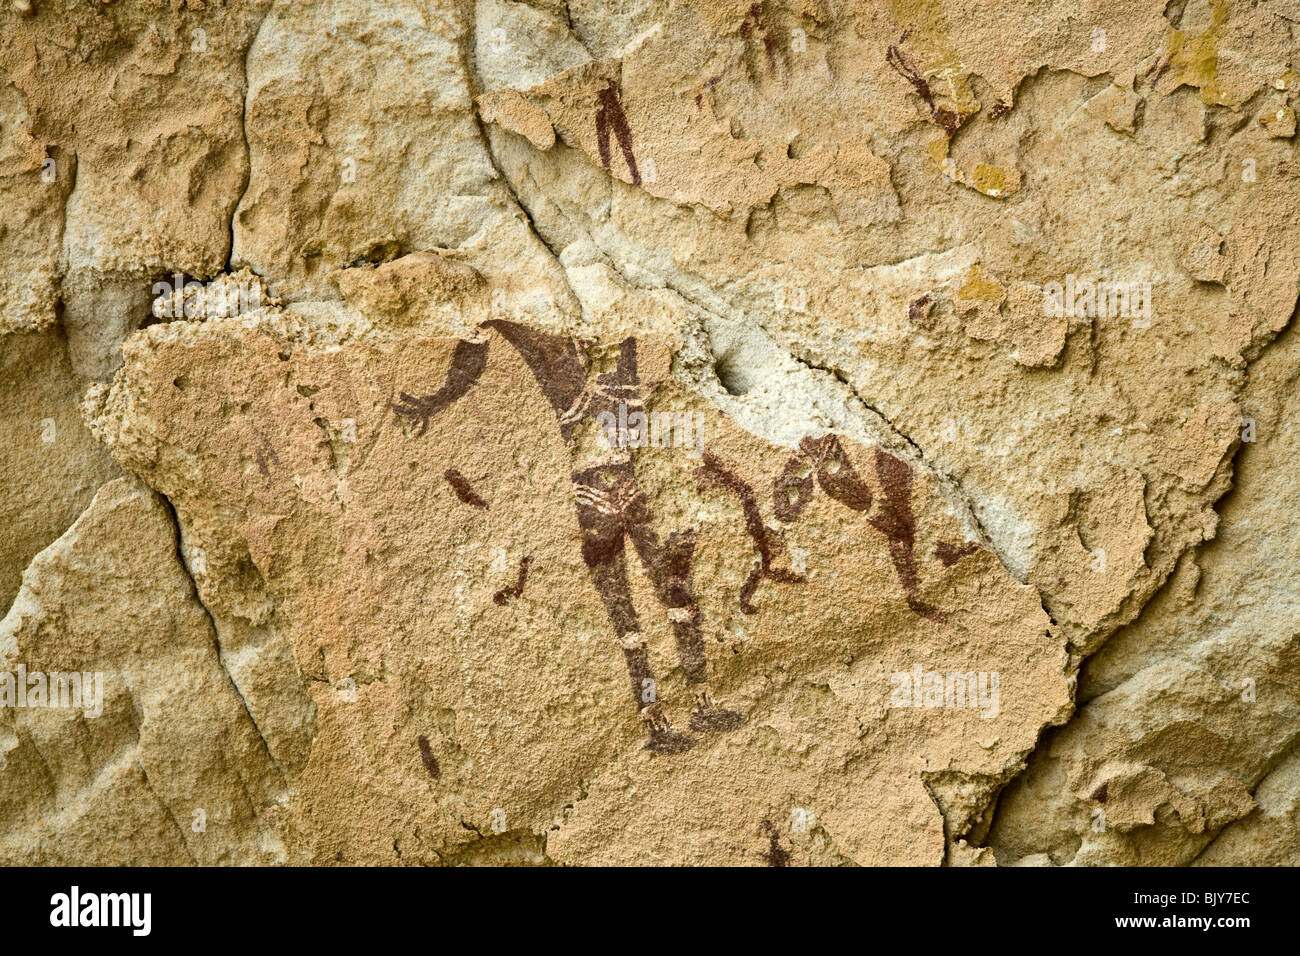 Rock art in the Cave of Swimmers near Cave of the Archers, Wadi Sura area of Gilf Kebir region of Egypt's Western - Stock Image